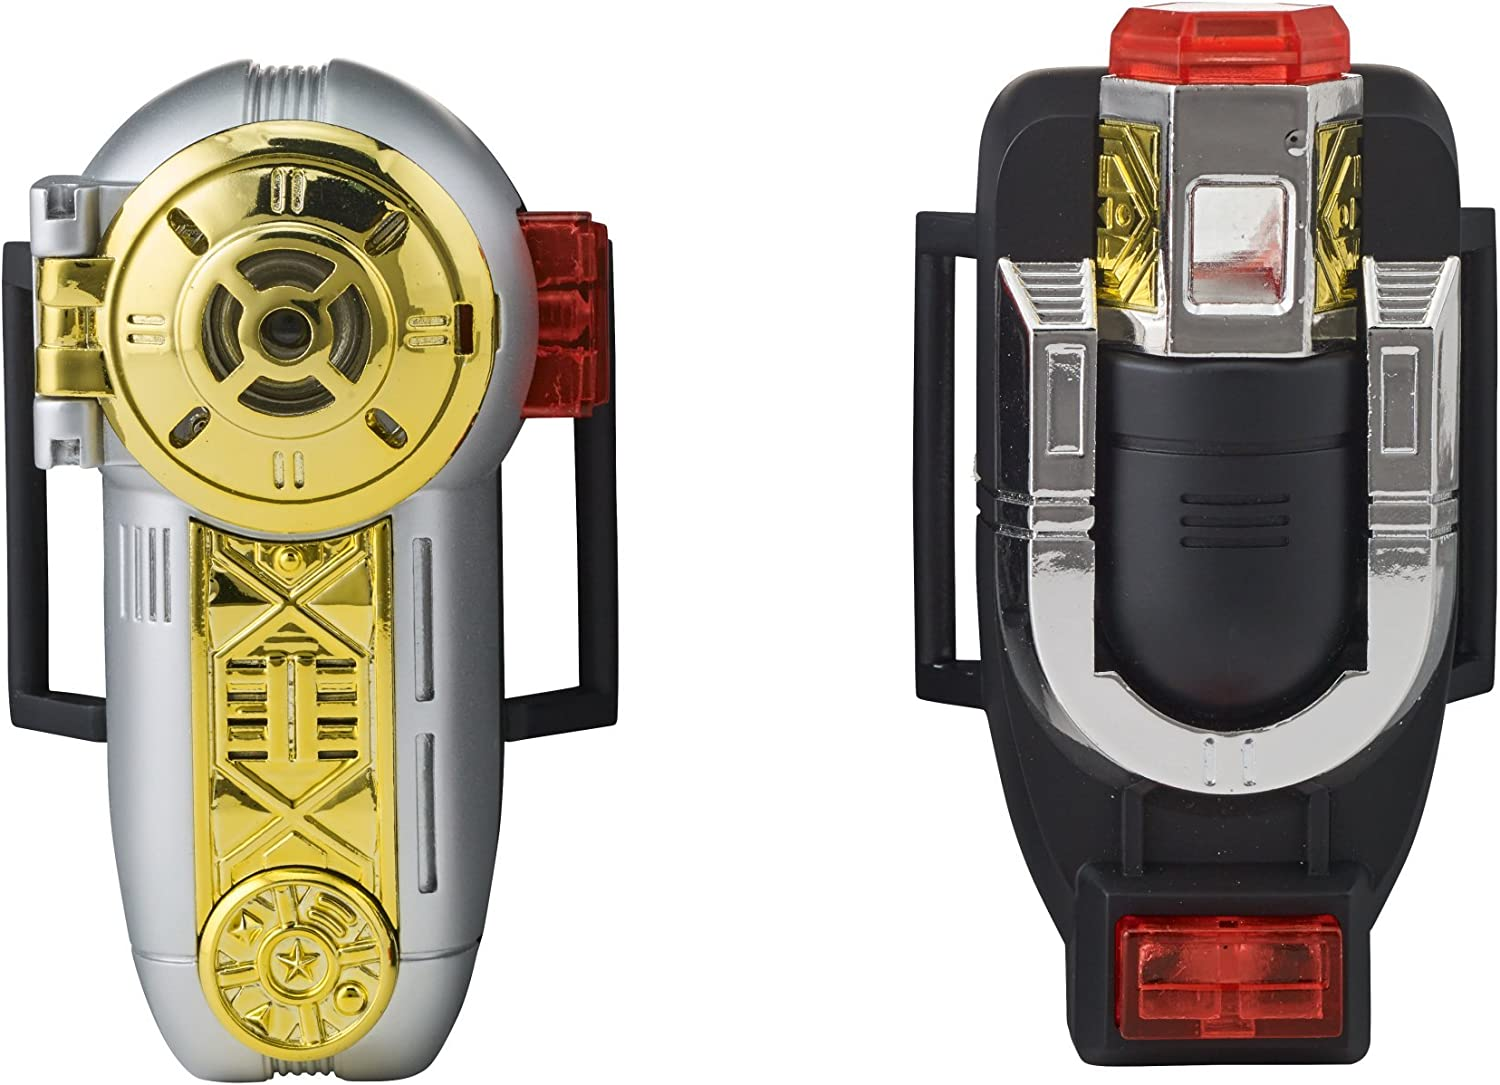 Amazon.com: Power Rangers Legacy Zeo Zeonizer: Toys & Games